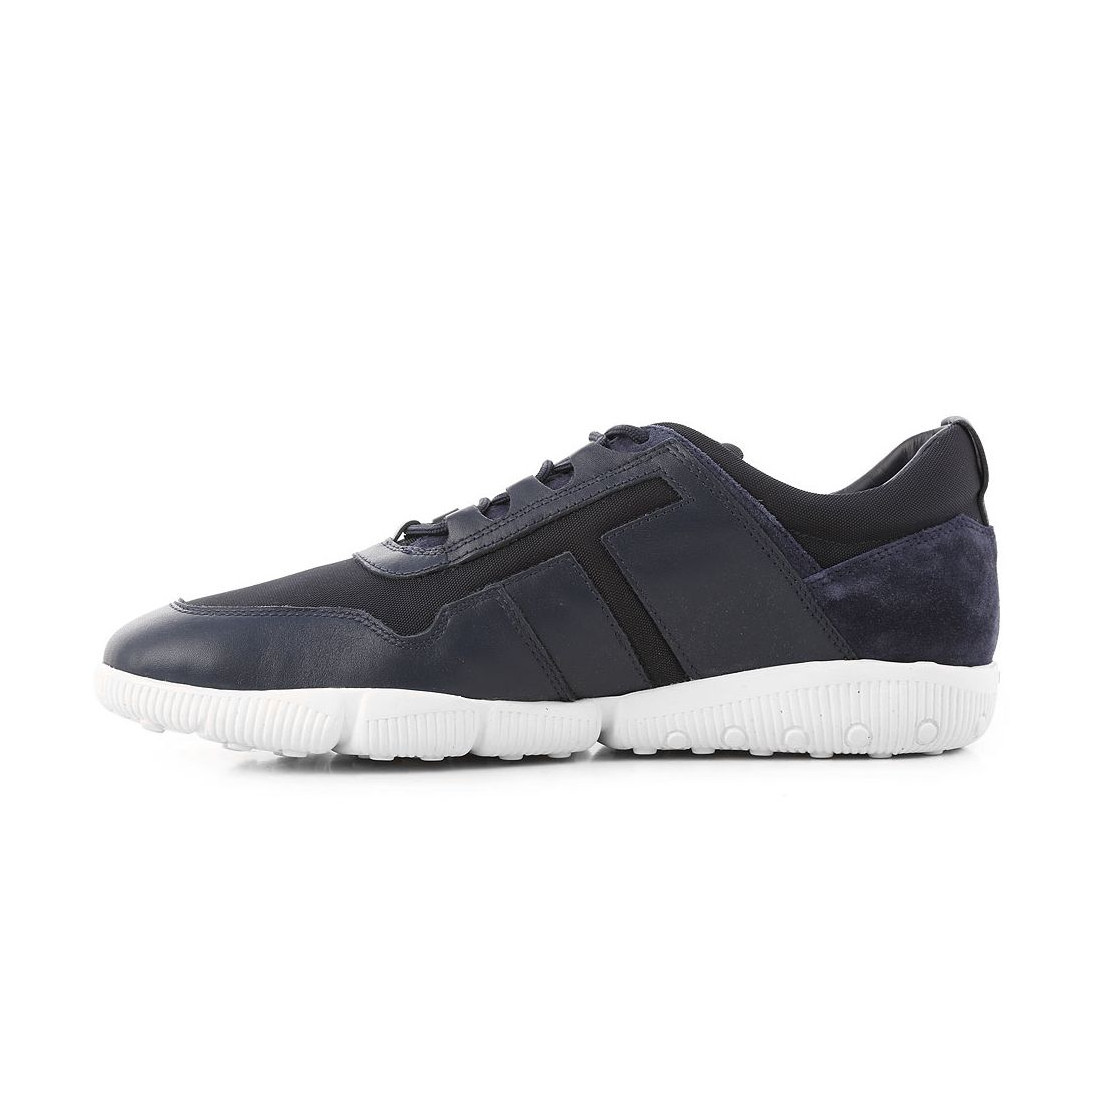 sneakers man tods xxm25c0cp50nxmhg89 6644